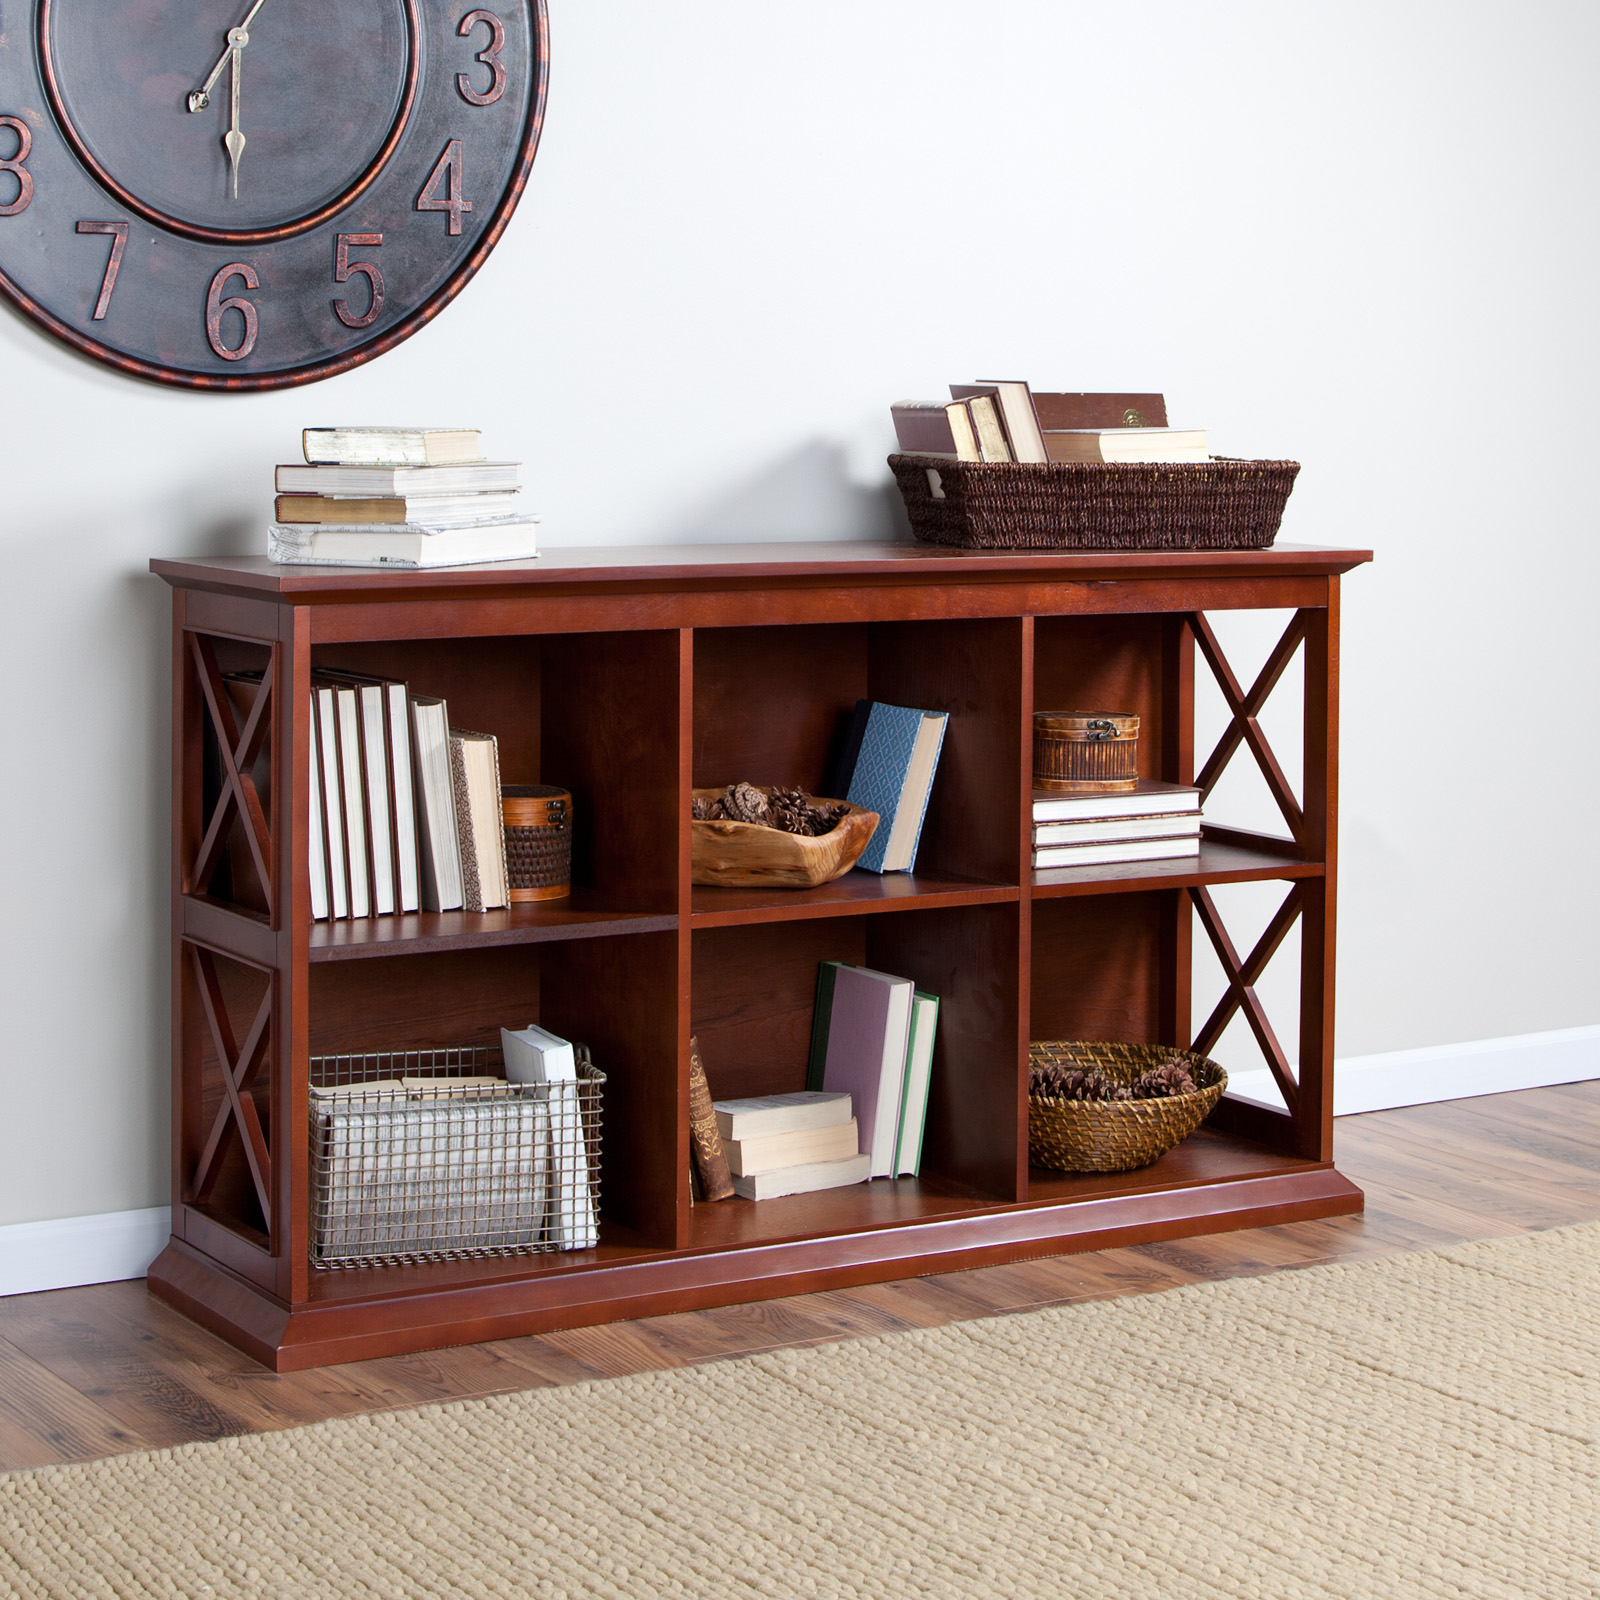 Belham Living Hampton Console Table in Cherry